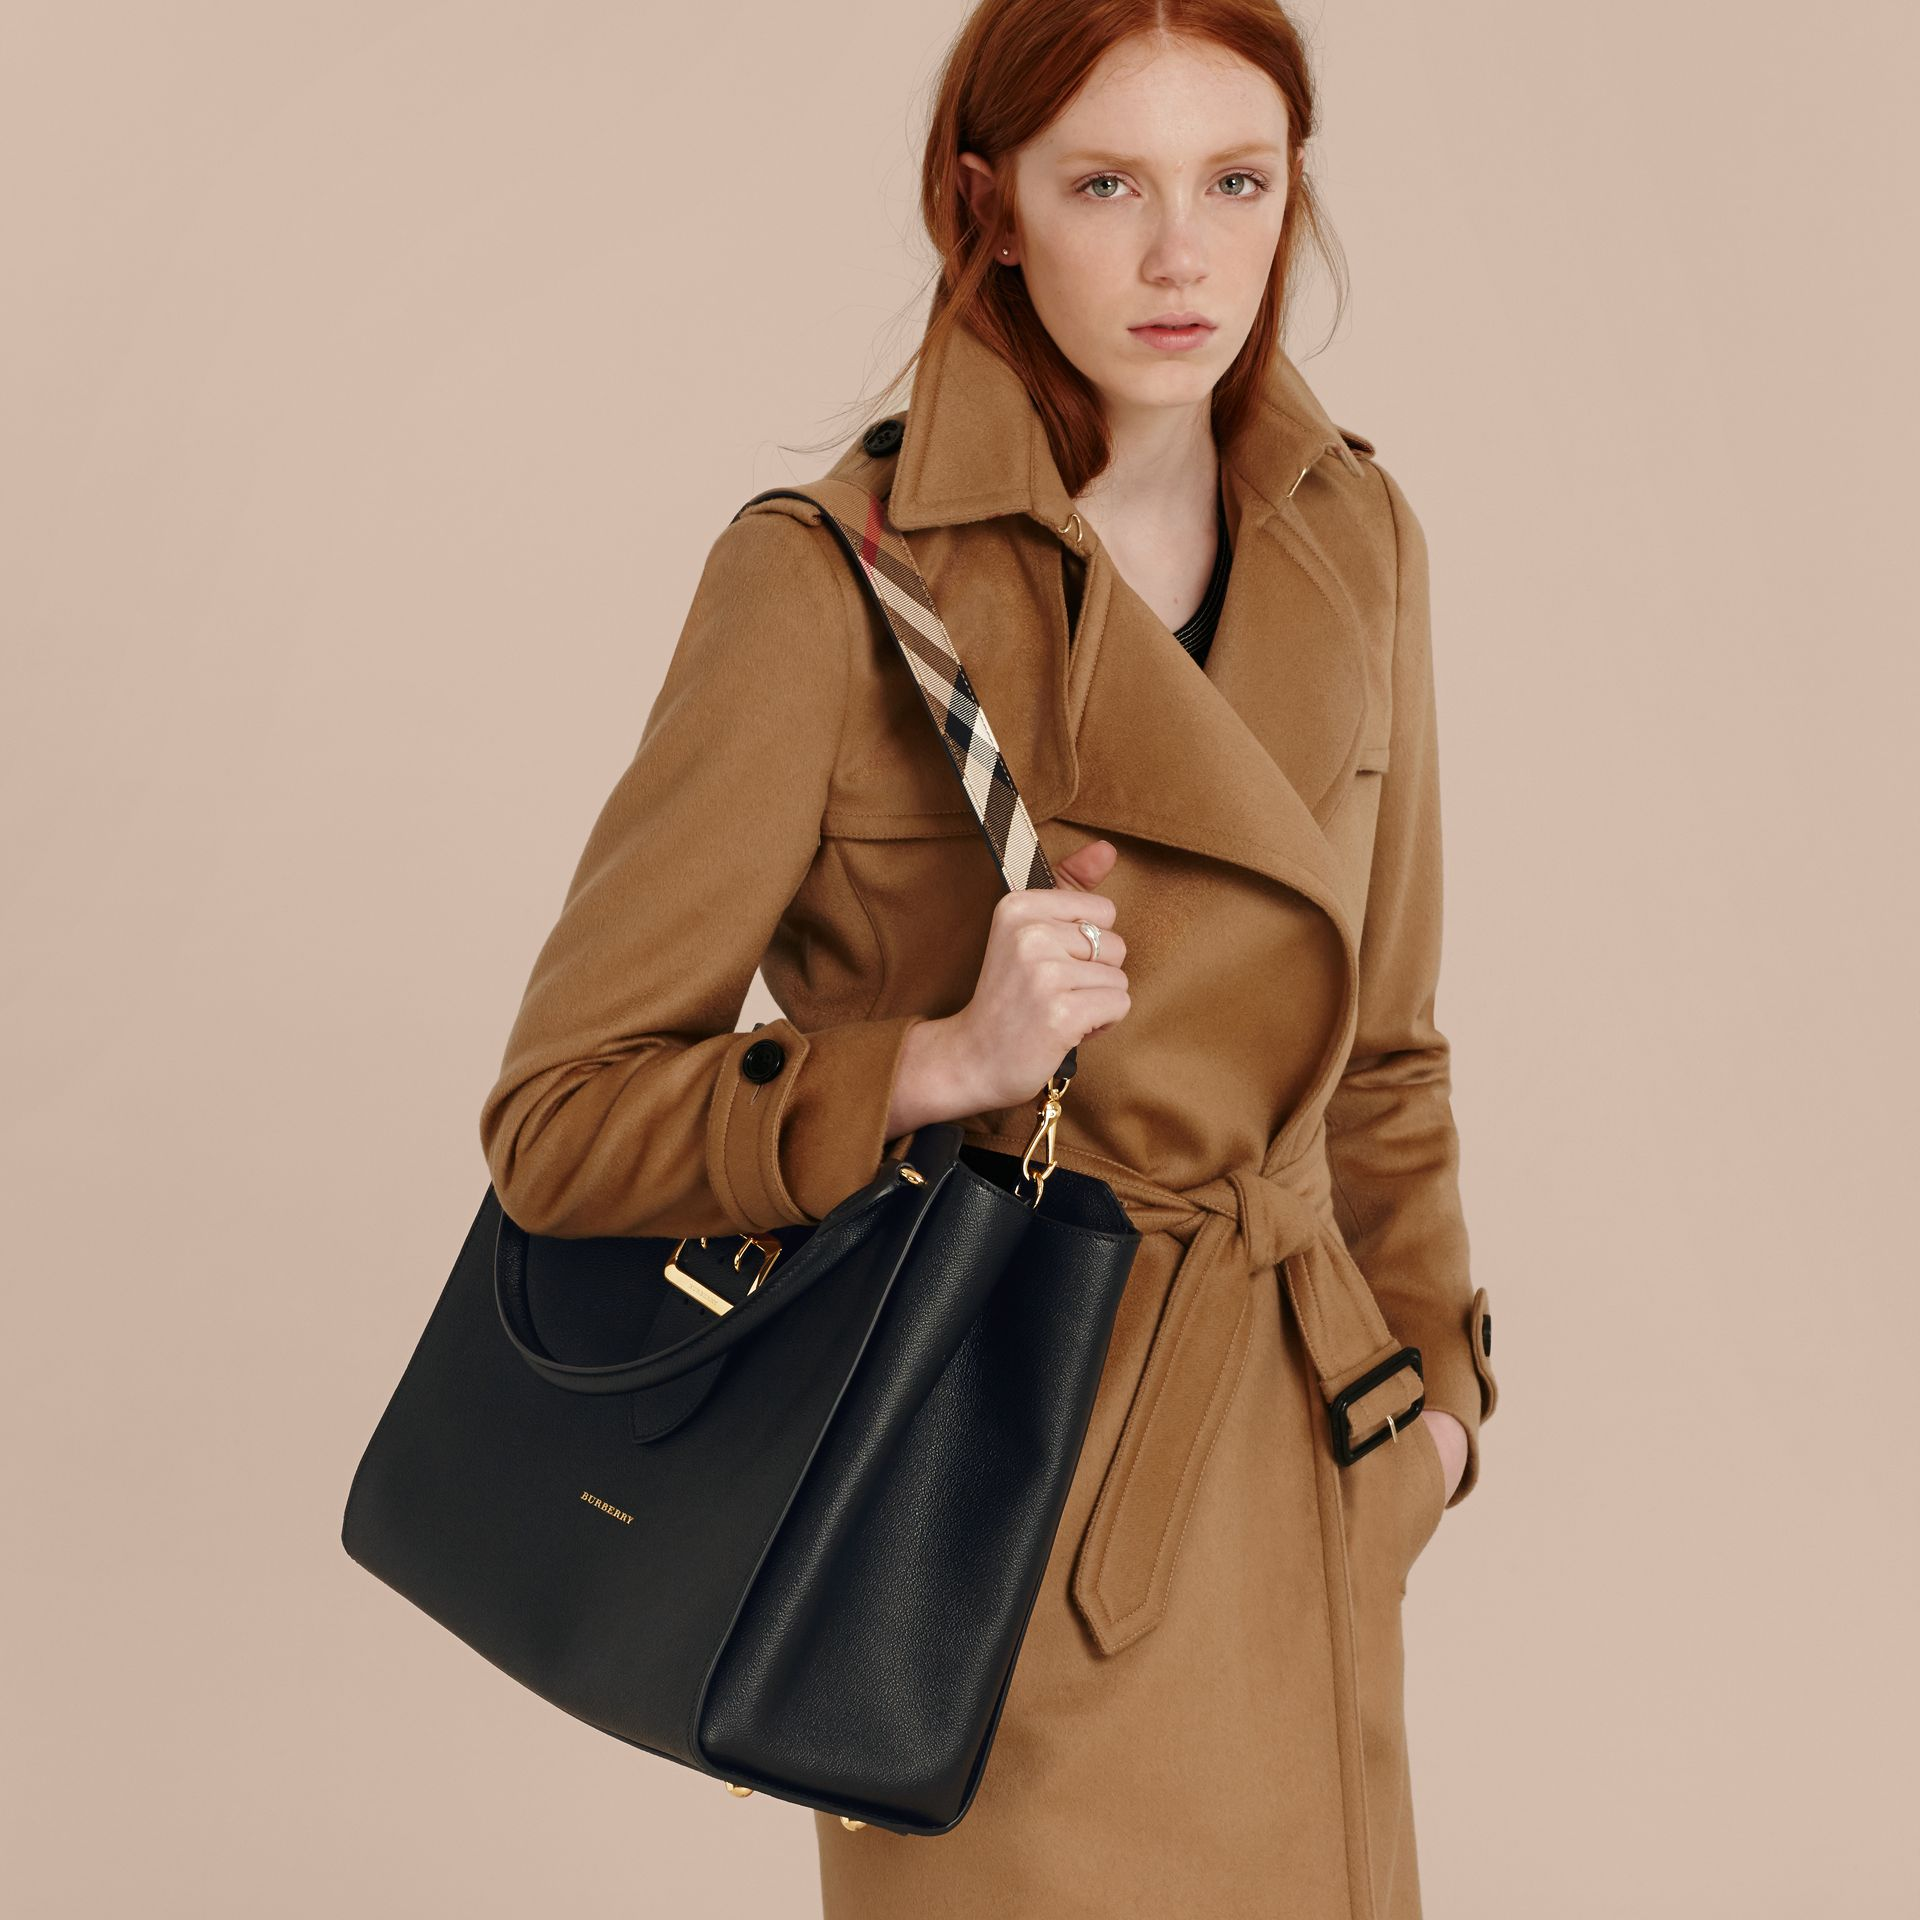 Borsa tote The Buckle grande in pelle a grana (Nero) - Donna | Burberry - immagine della galleria 3